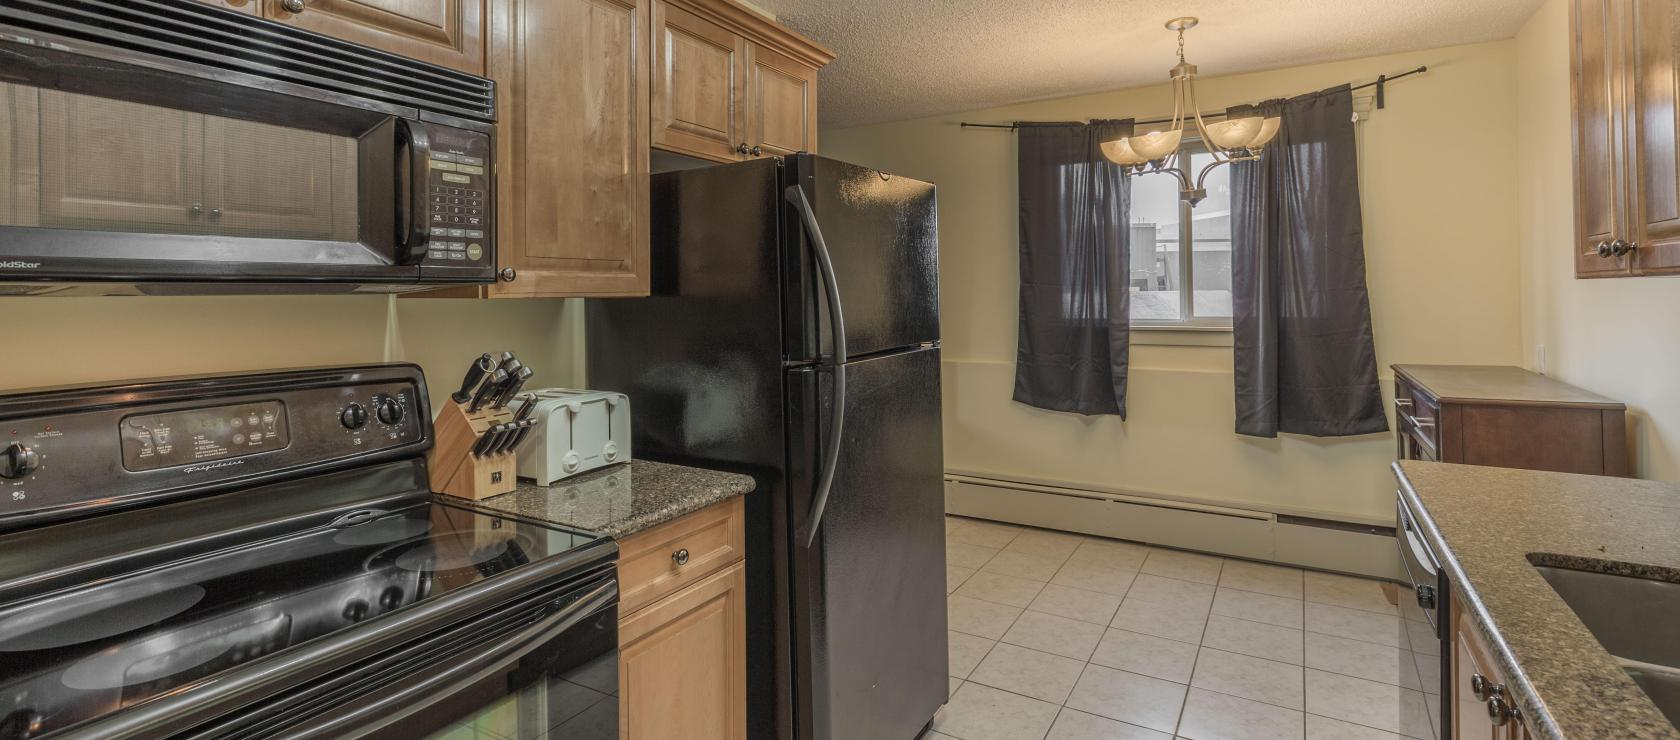 102 - 5600 52nd Avenue, Downtown, Yellowknife 2